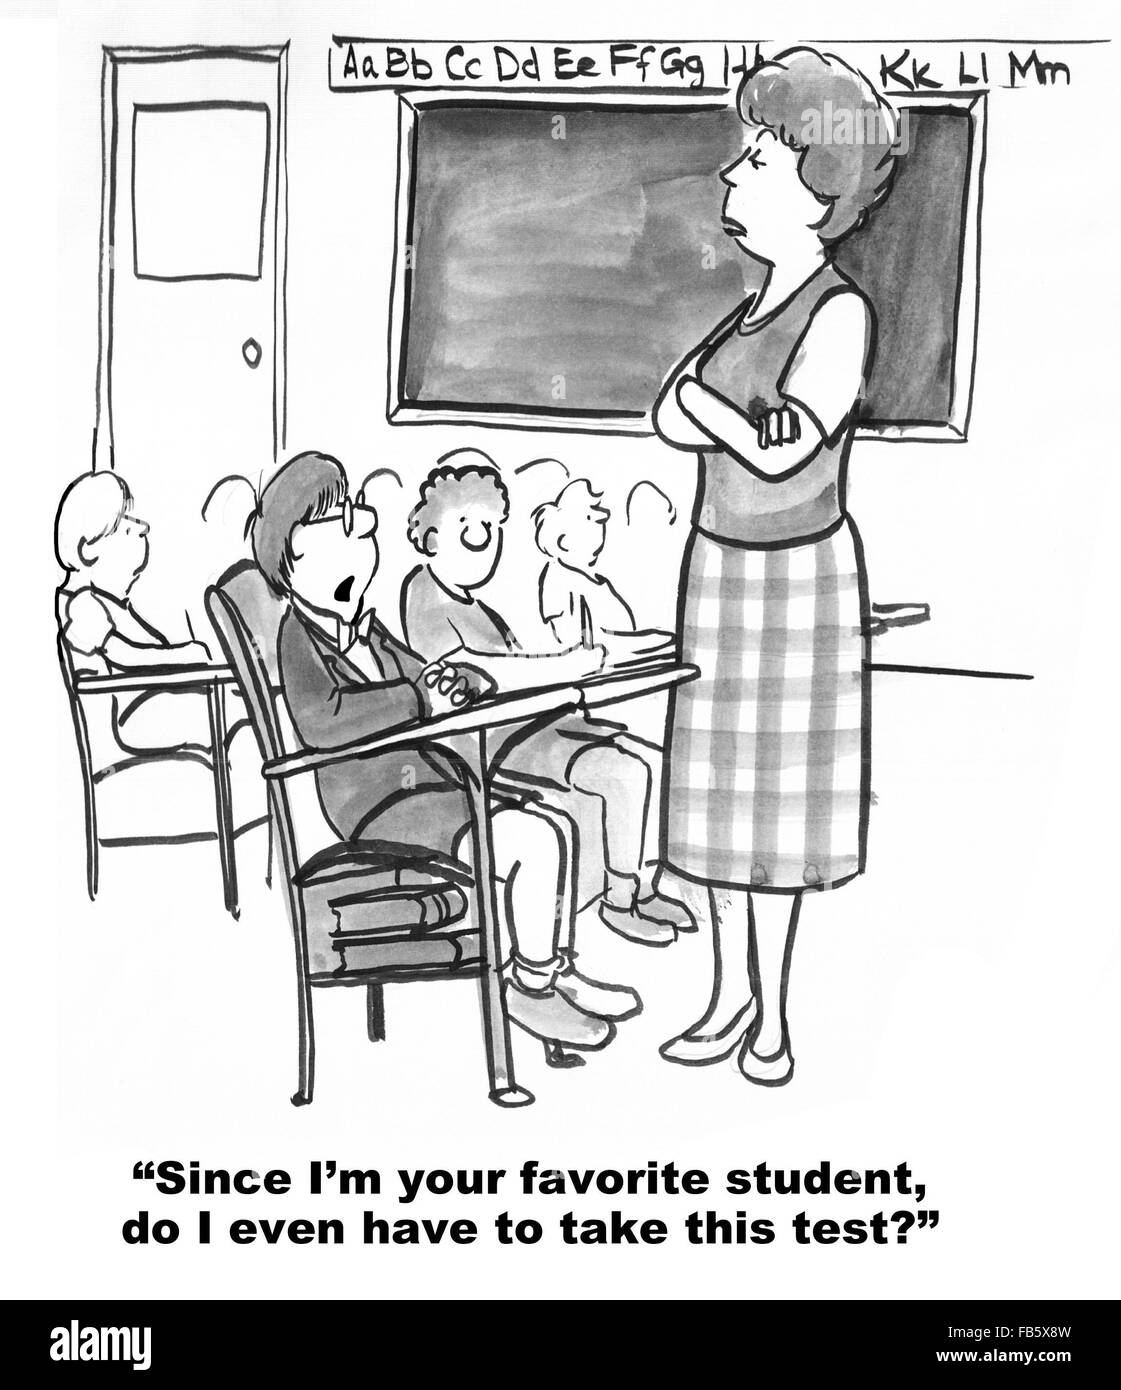 Education cartoon.  The boy wonders if has to take the test since he is the teacher's favorite student. - Stock Image